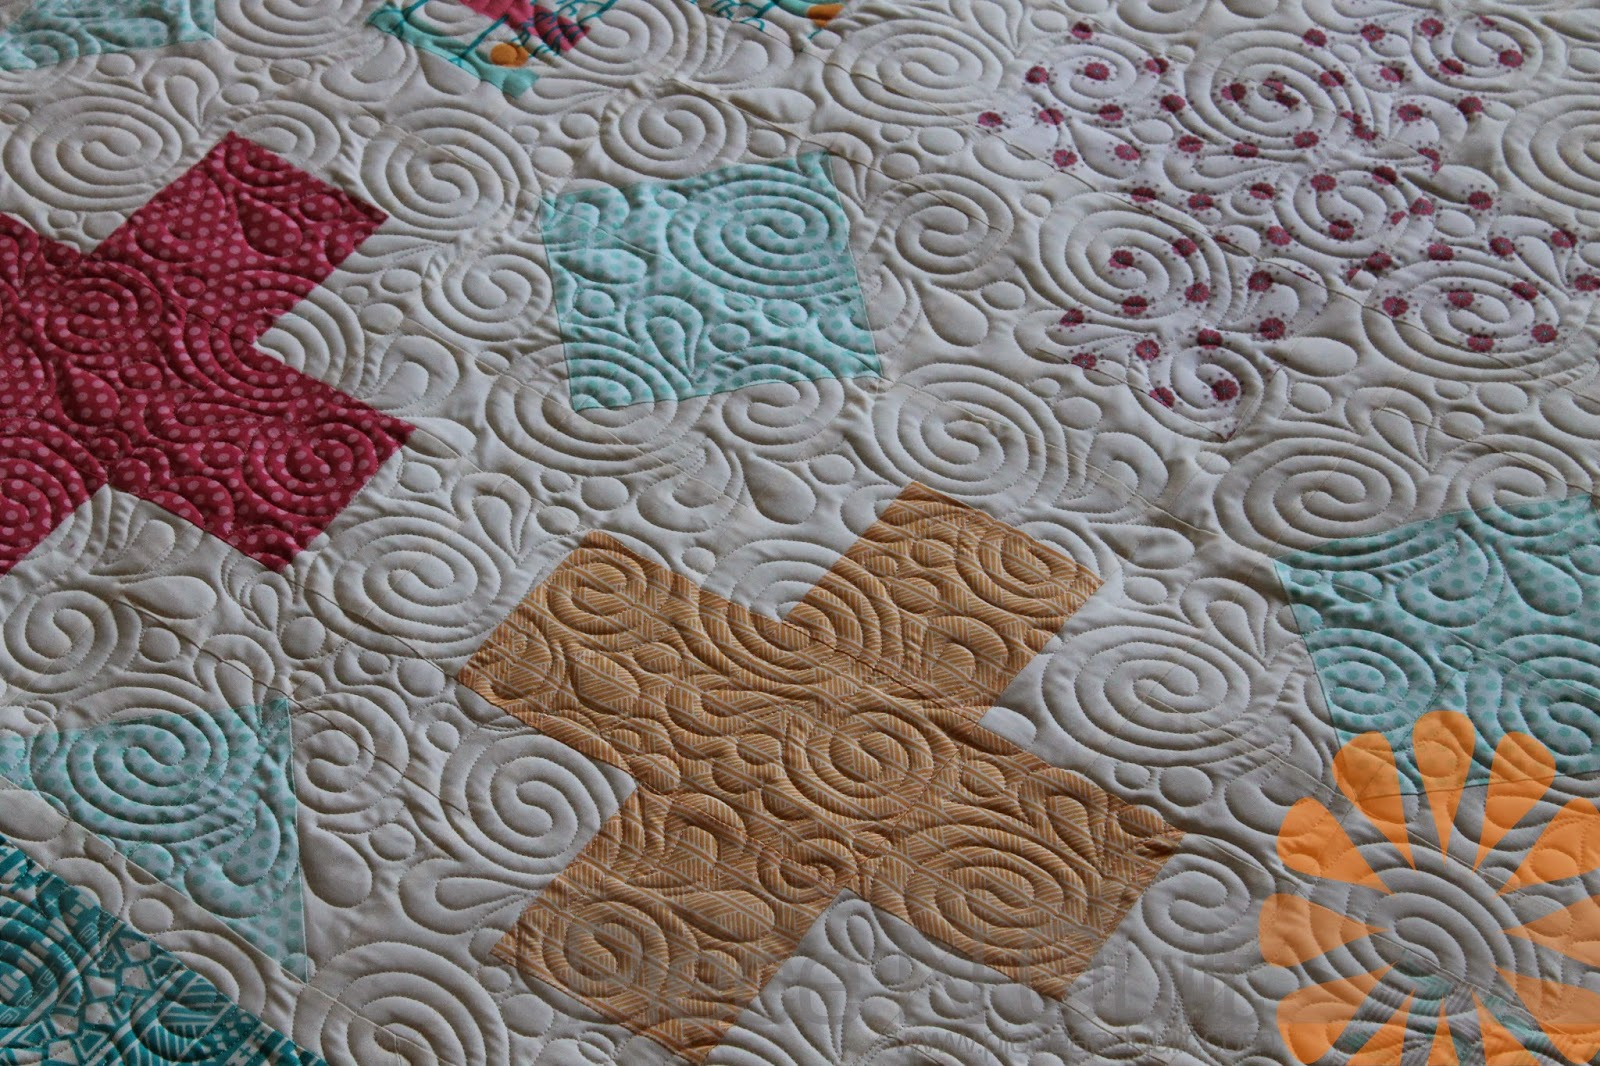 This quilt is another adorable quilt designed by Sherri   Chelsi of A  Quilting Life 67d04fa72aec4